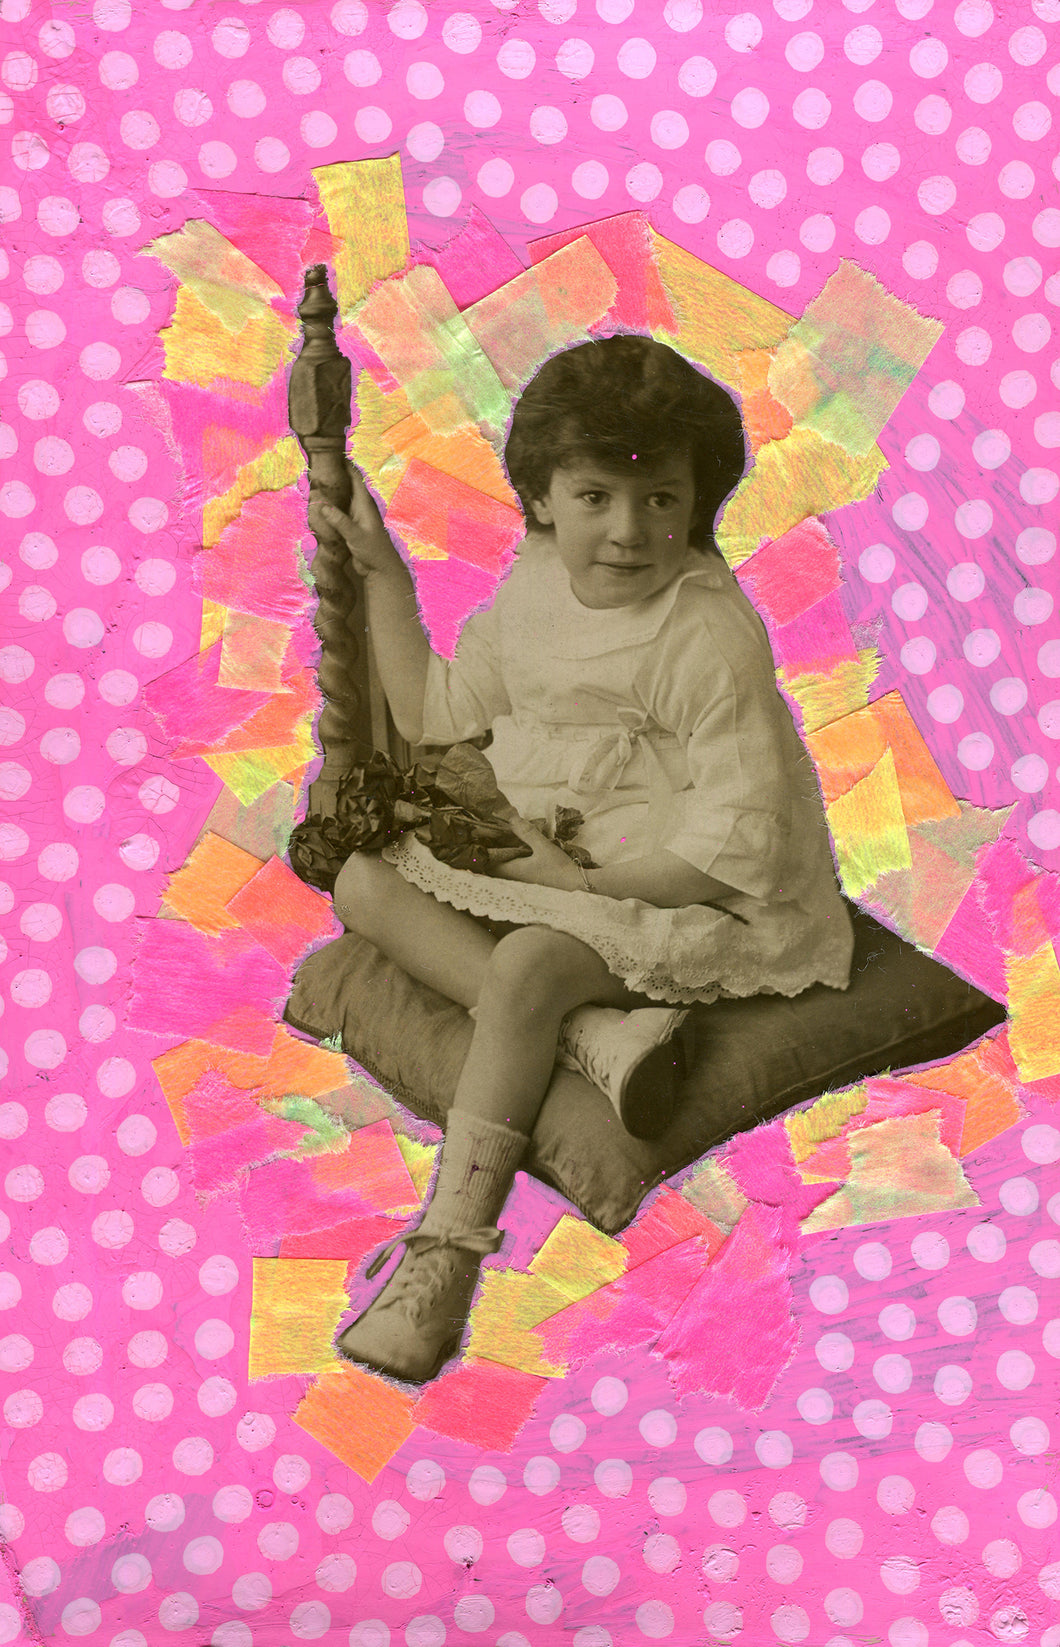 Neon Pink Vintage Baby Girl Art Collage - Naomi Vona Art